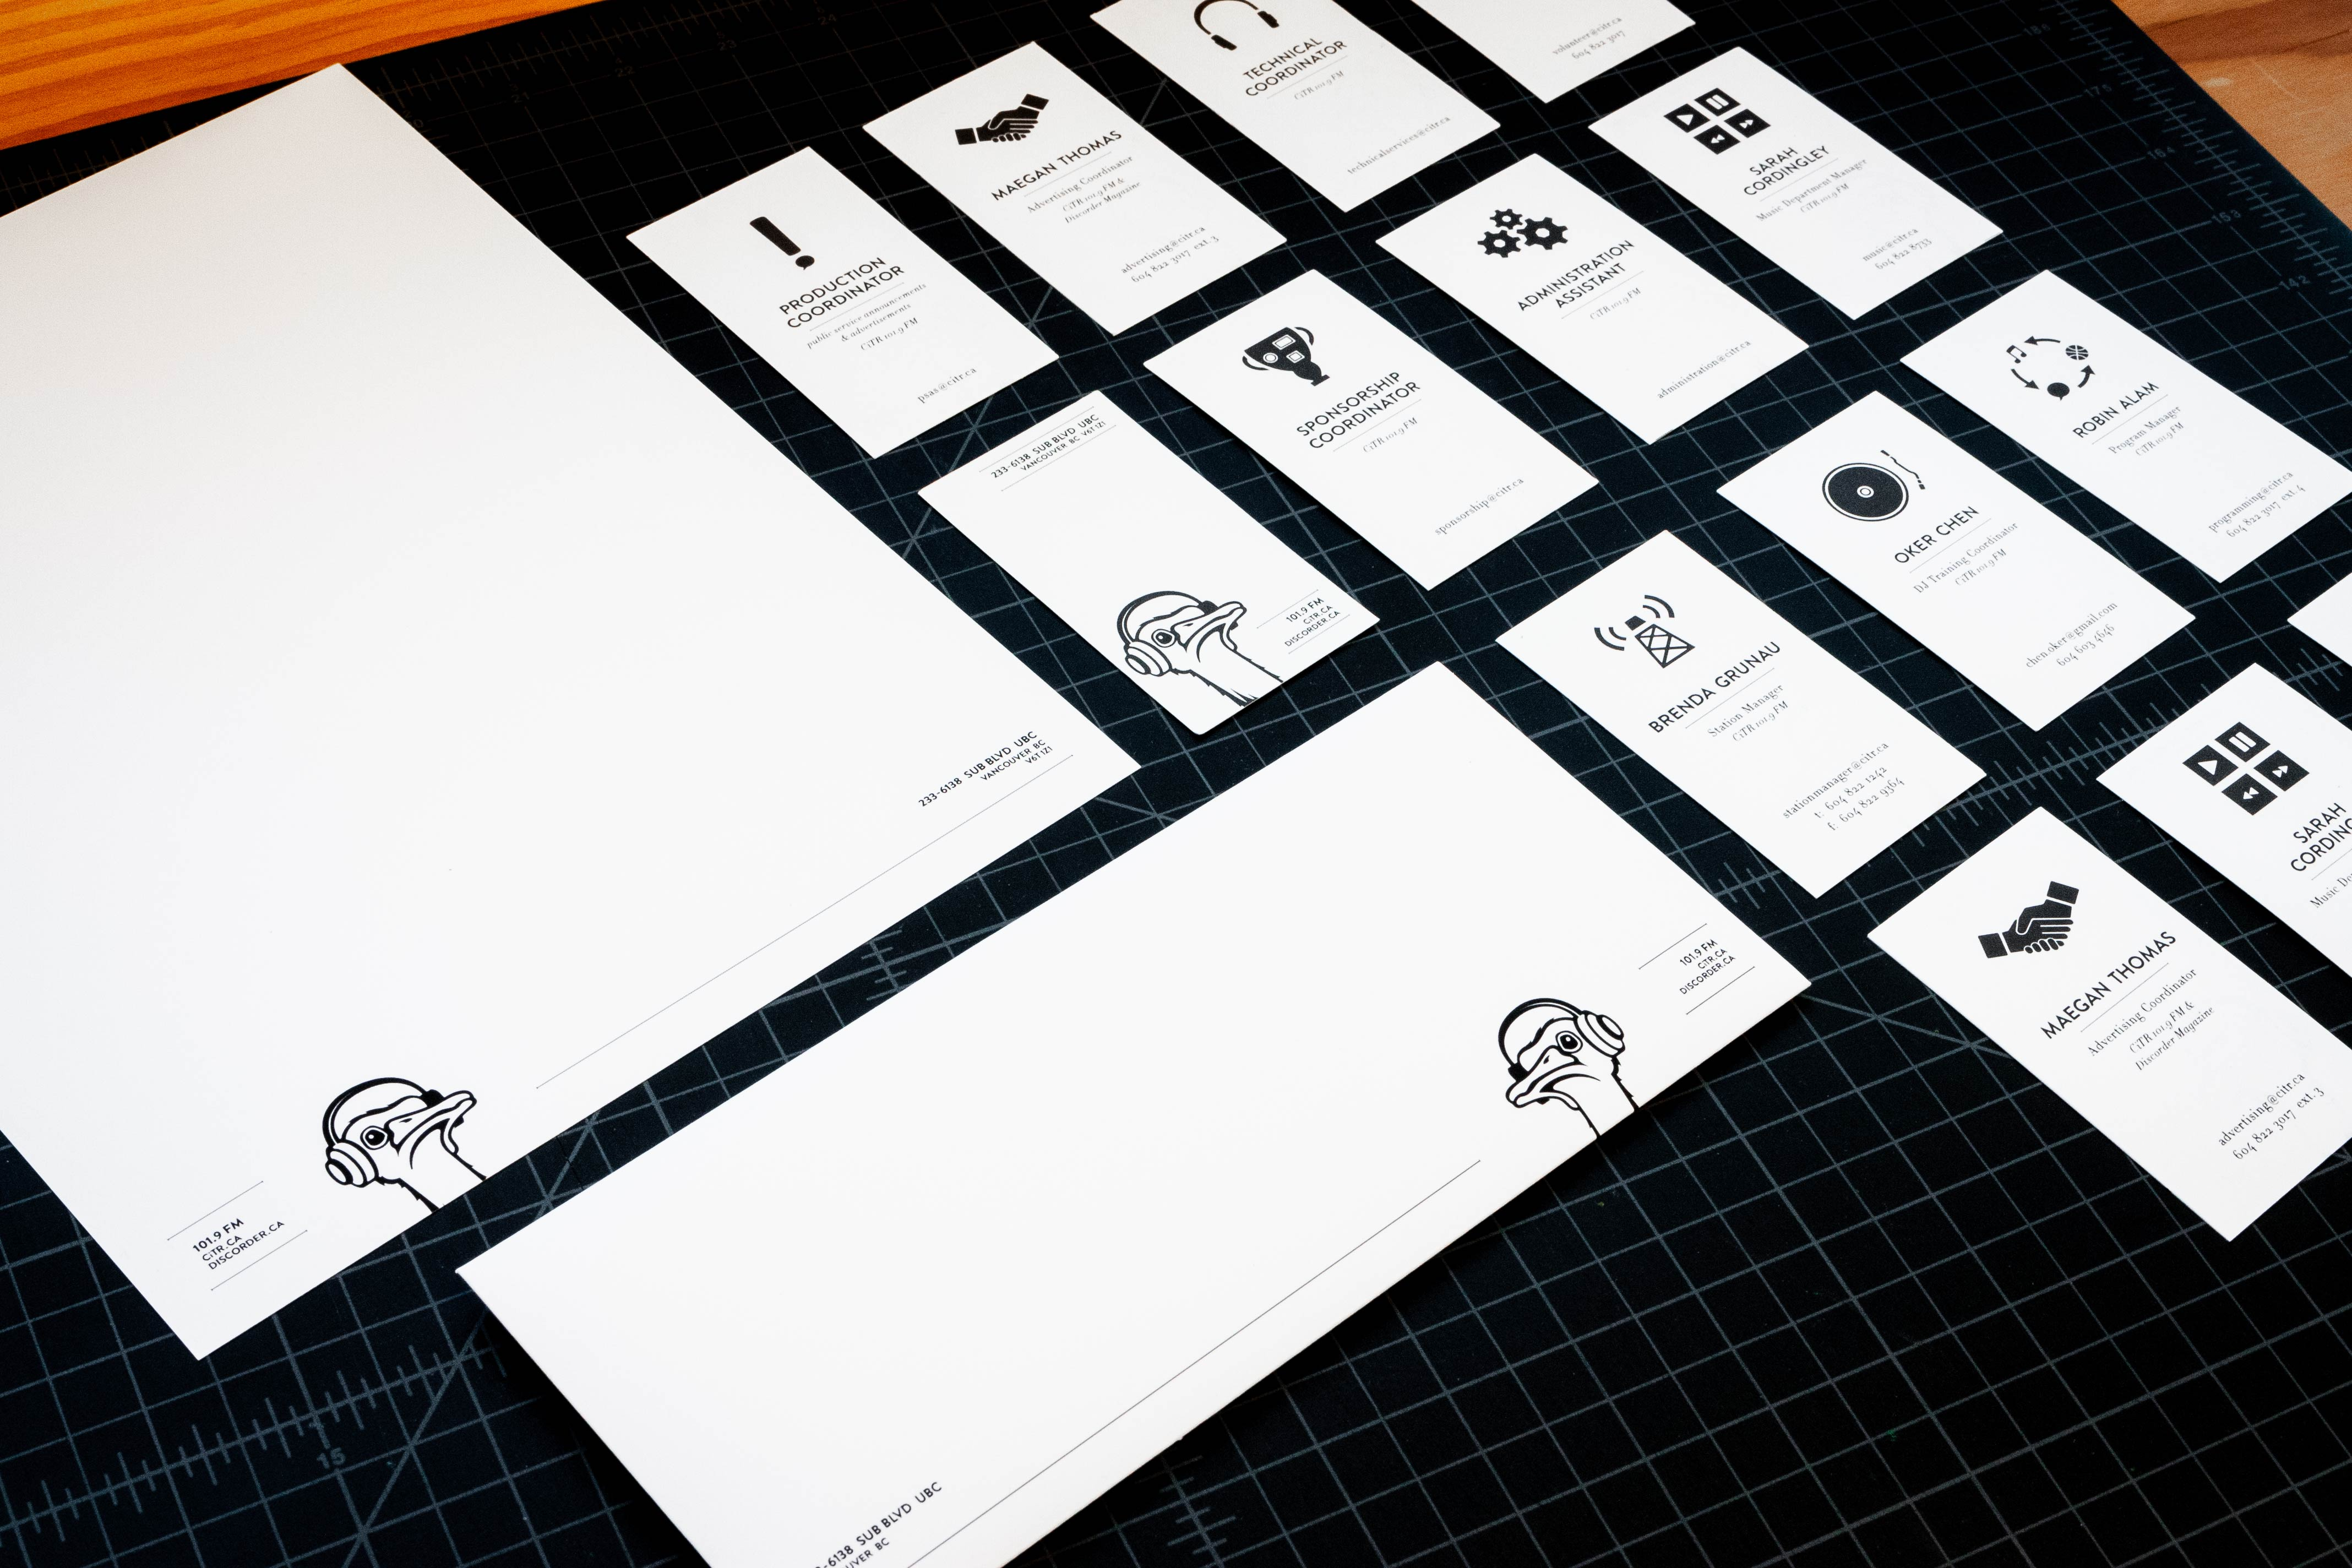 CiTR Radio iconographic business cards, letterhead and envelopes — by Yagnyuk.